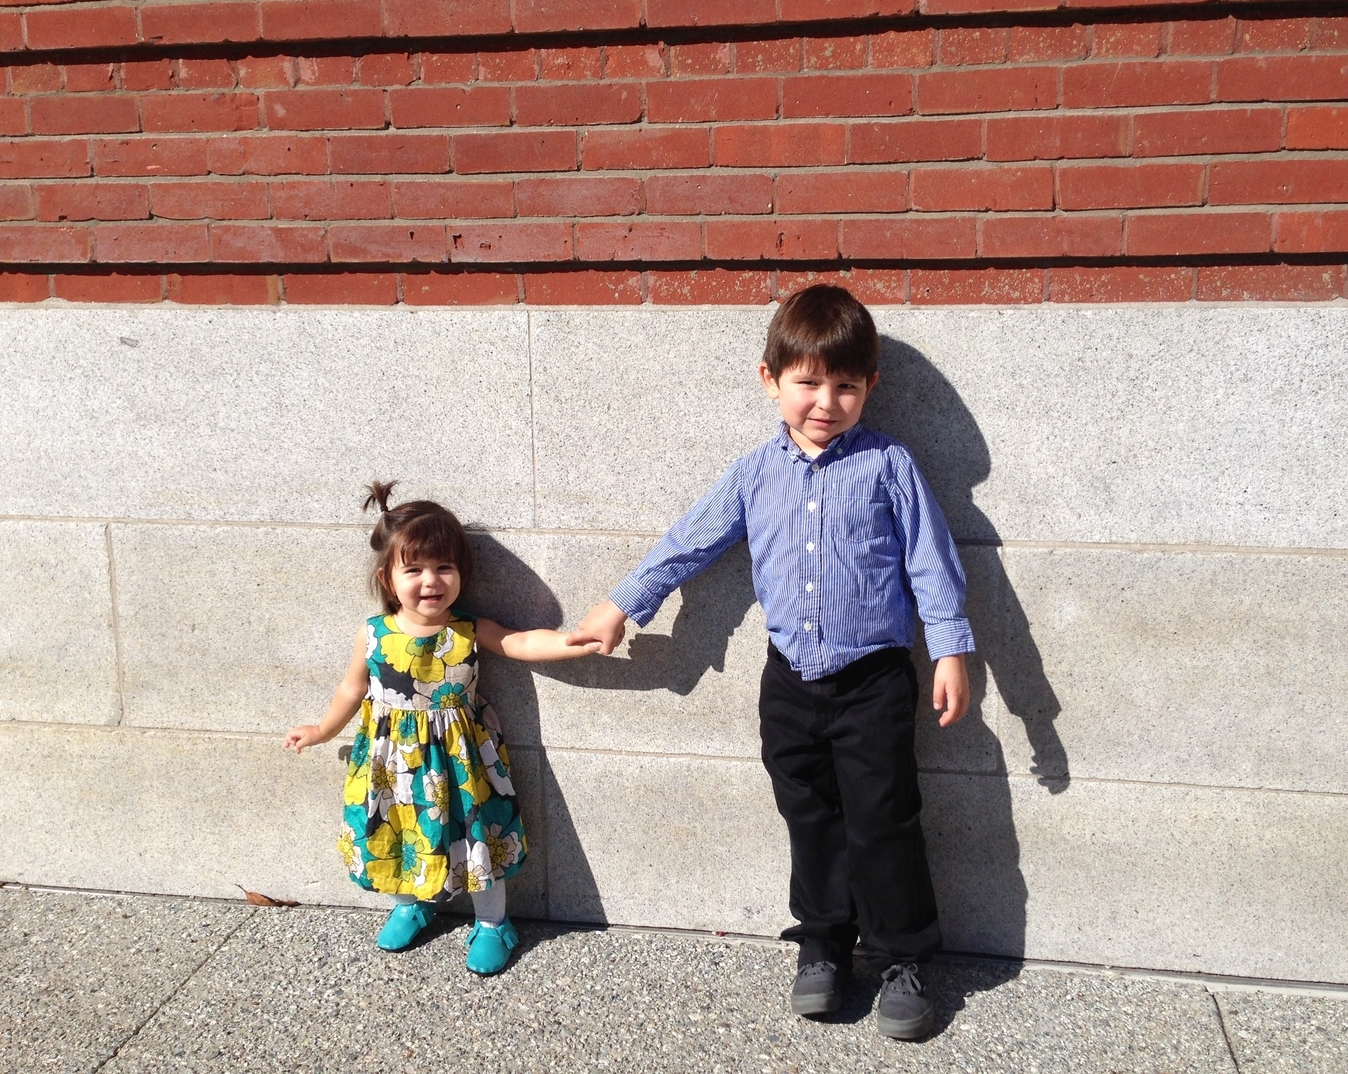 An iphonepicture I took of them right after church, I couldn't resist the temptation;)